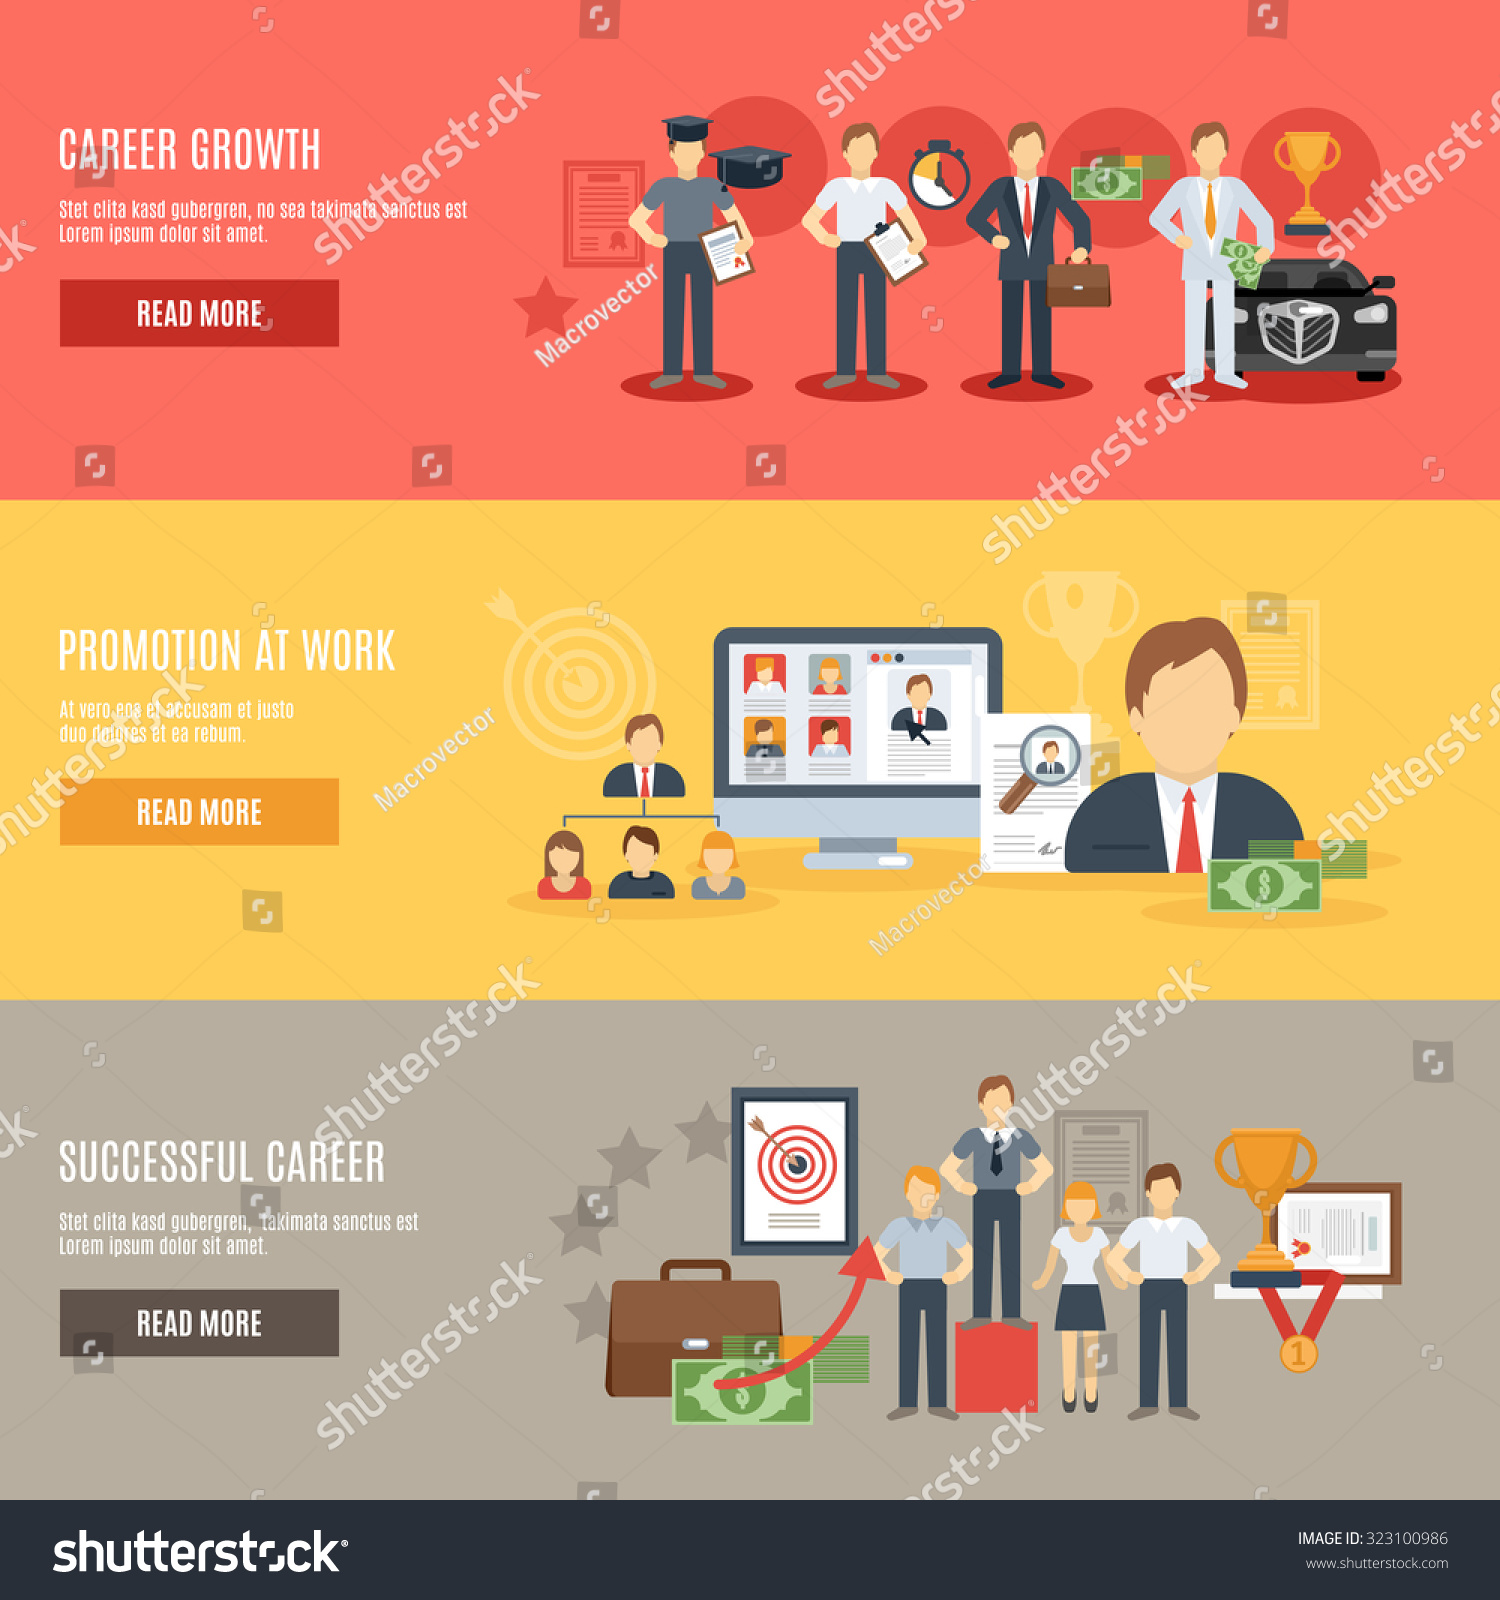 career growth horizontal banner set promotion stock illustration career growth horizontal banner set promotion at work flat elements isolated illustration